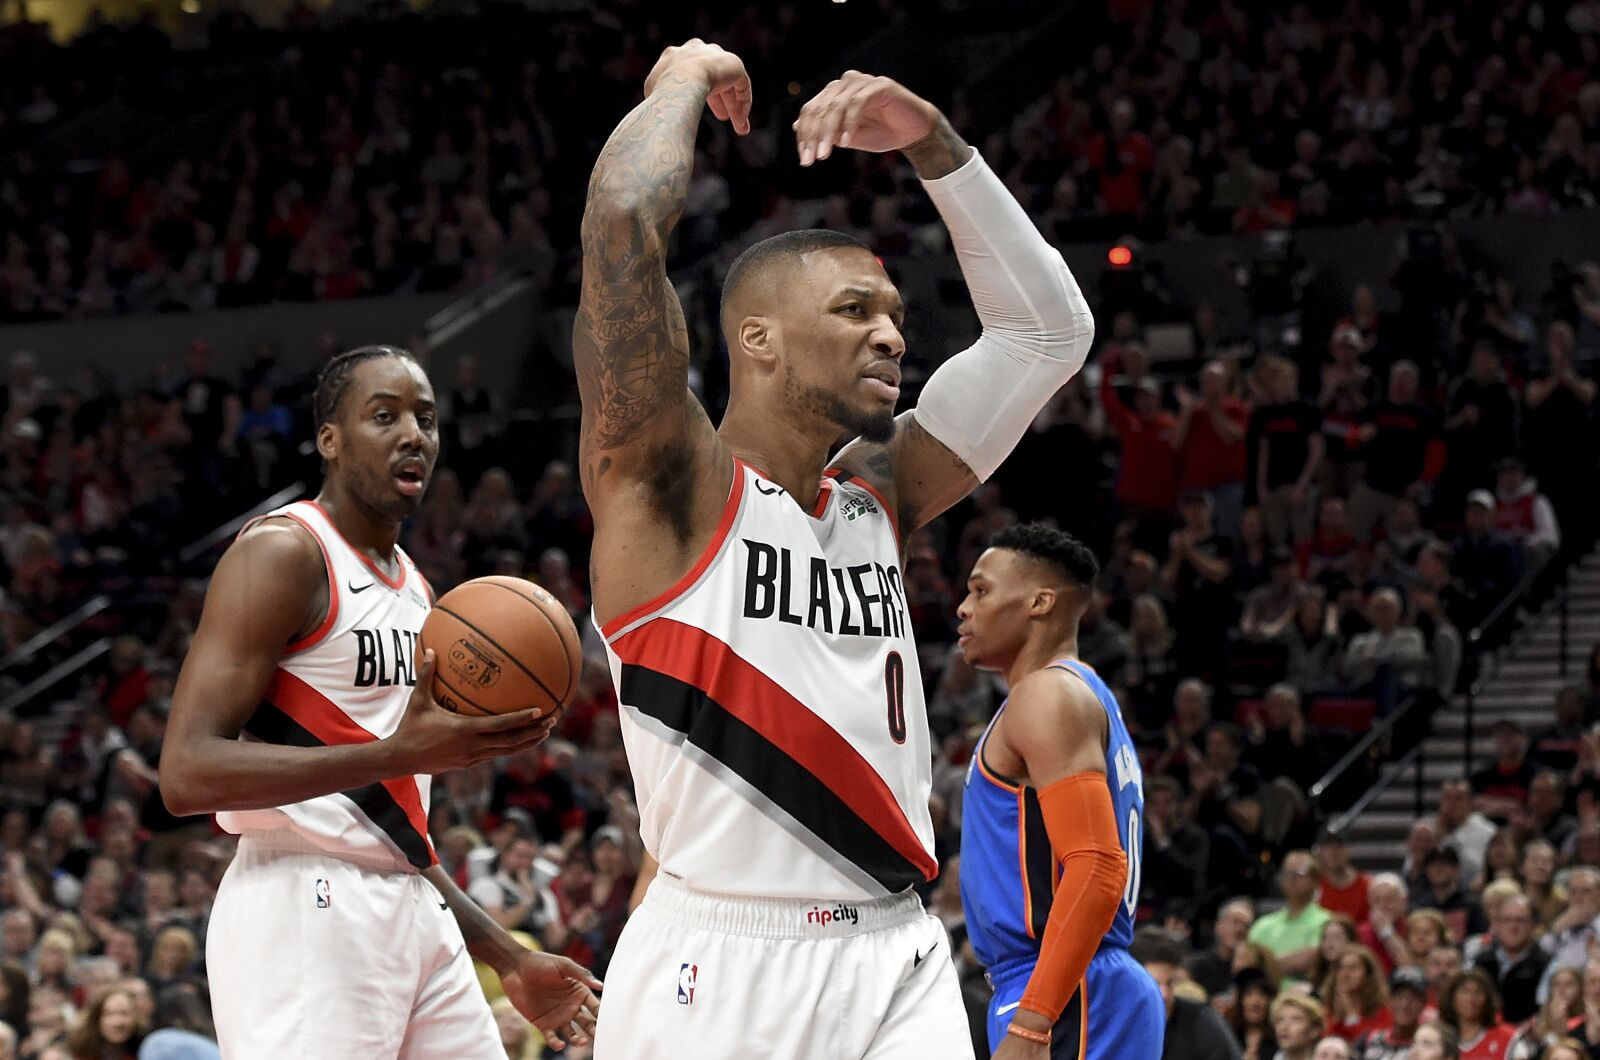 PORTLAND, OR - APRIL 14: Damian Lillard #0 of the Portland Trail Blazers reacts during play against the Oklahoma City Thunder in the first quarter at Moda Center on April 14, 2019 in Portland, Oregon. (Photo by Steve Dykes/Getty Images)